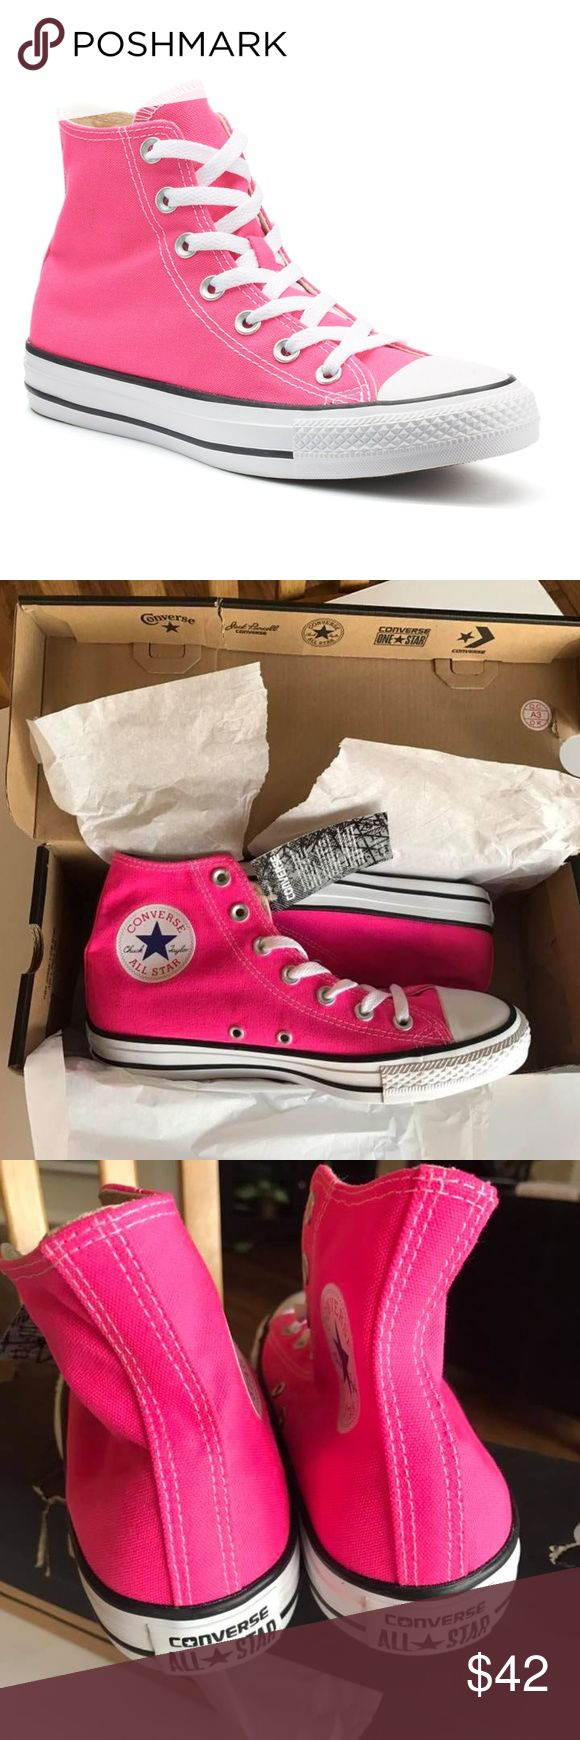 NEW Converse high top chucks sneakers 8 women Sz 8 women (6 men), bright pink high top Converse sneakers, new in box, never worn or tried on Converse Shoes Sneakers